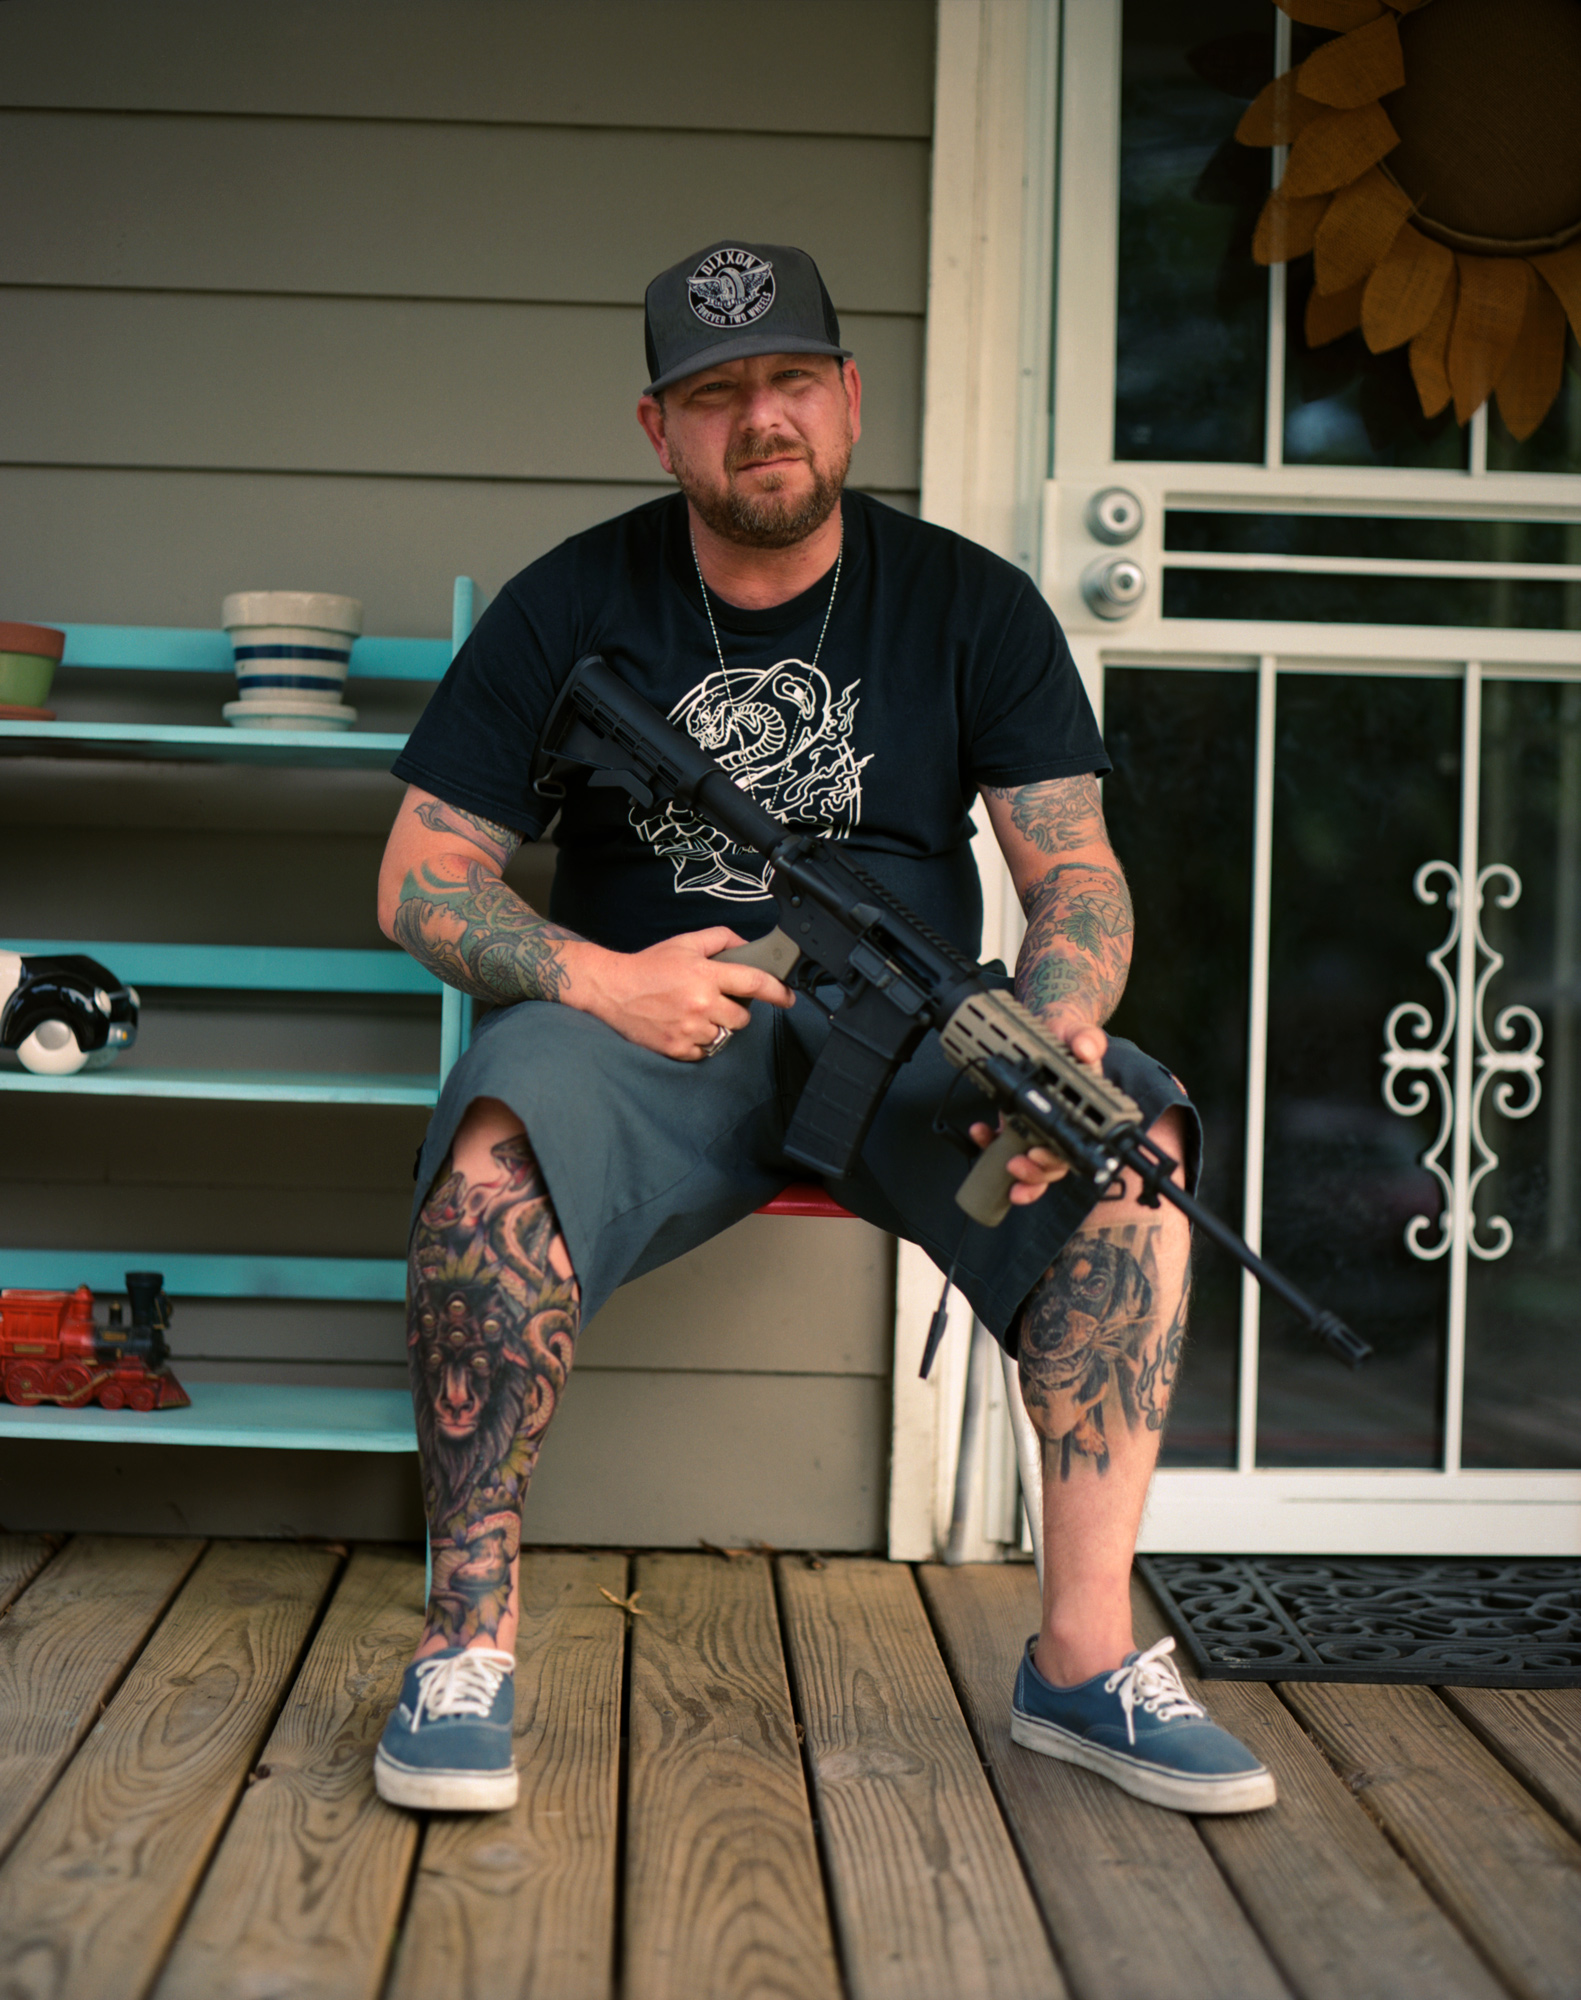 Derek with an AK47 Gun on Front Porch in Memphis, OMG your English Series